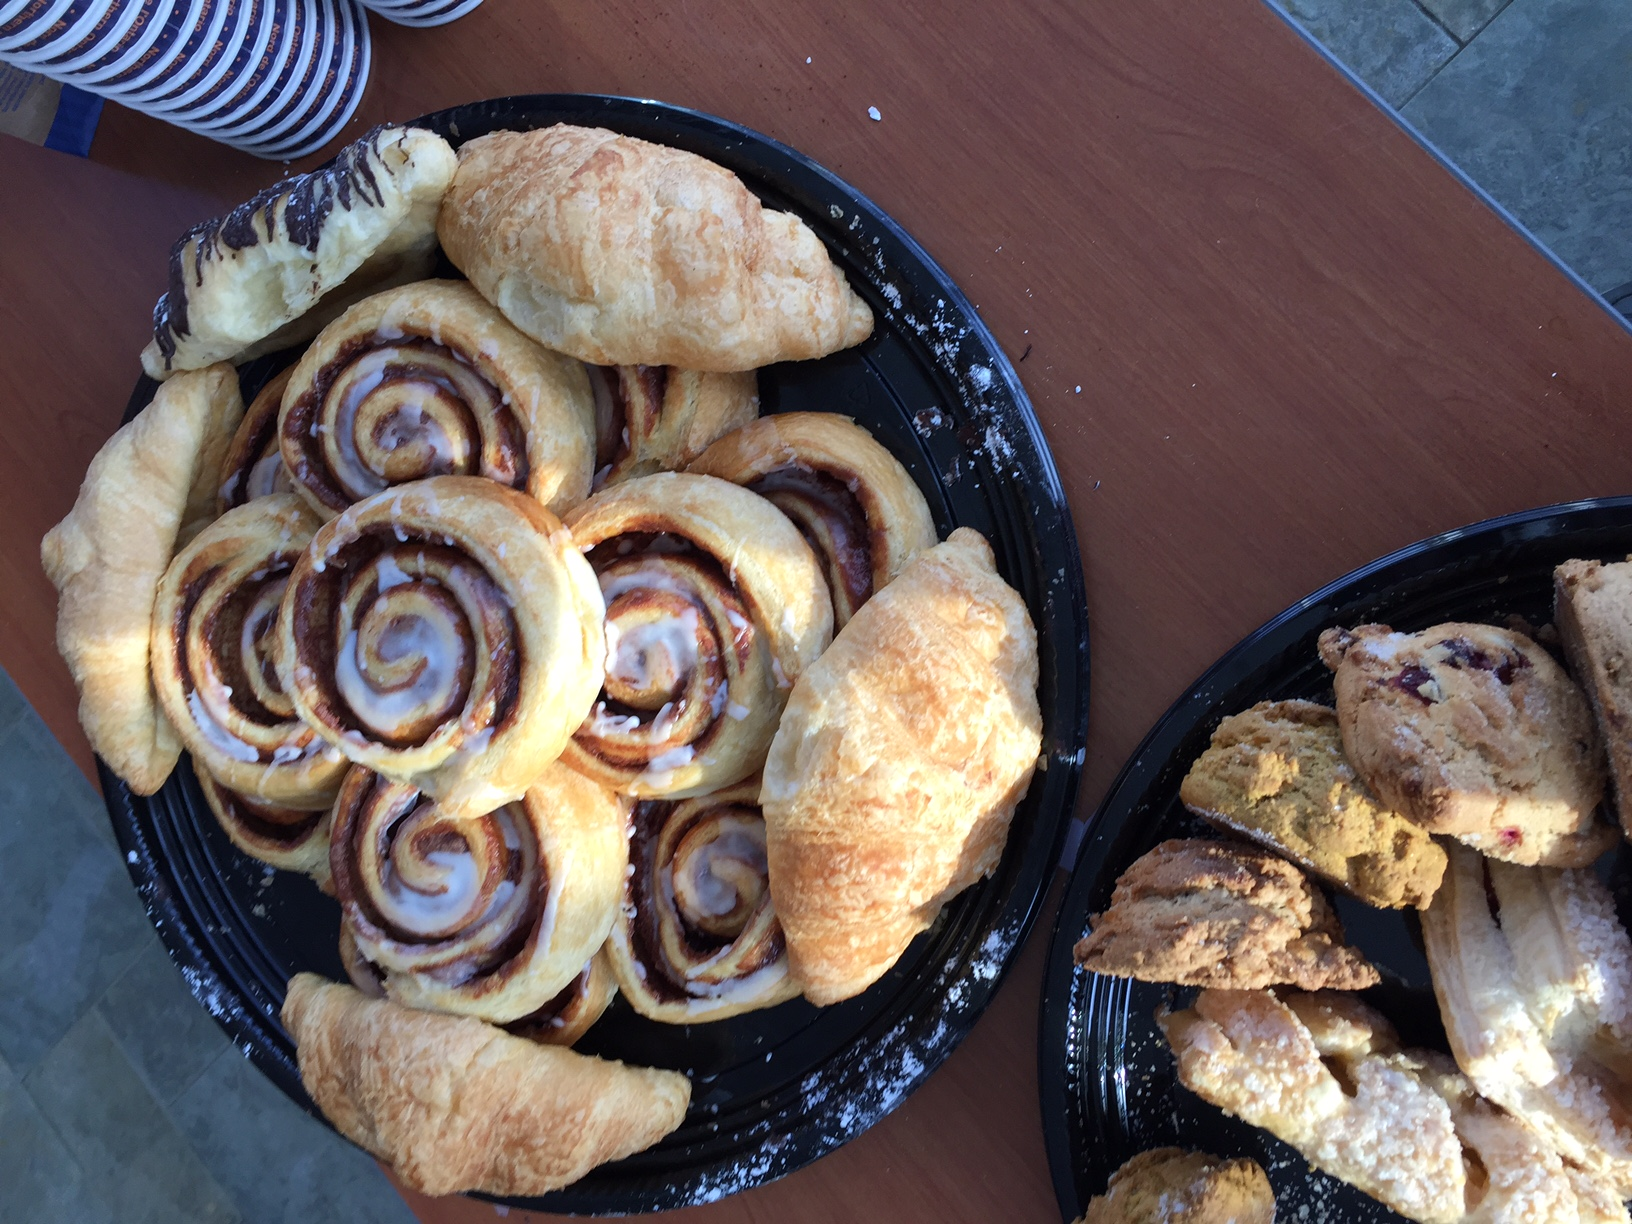 Old Rock Catering Services (Cinnamon Rolls)